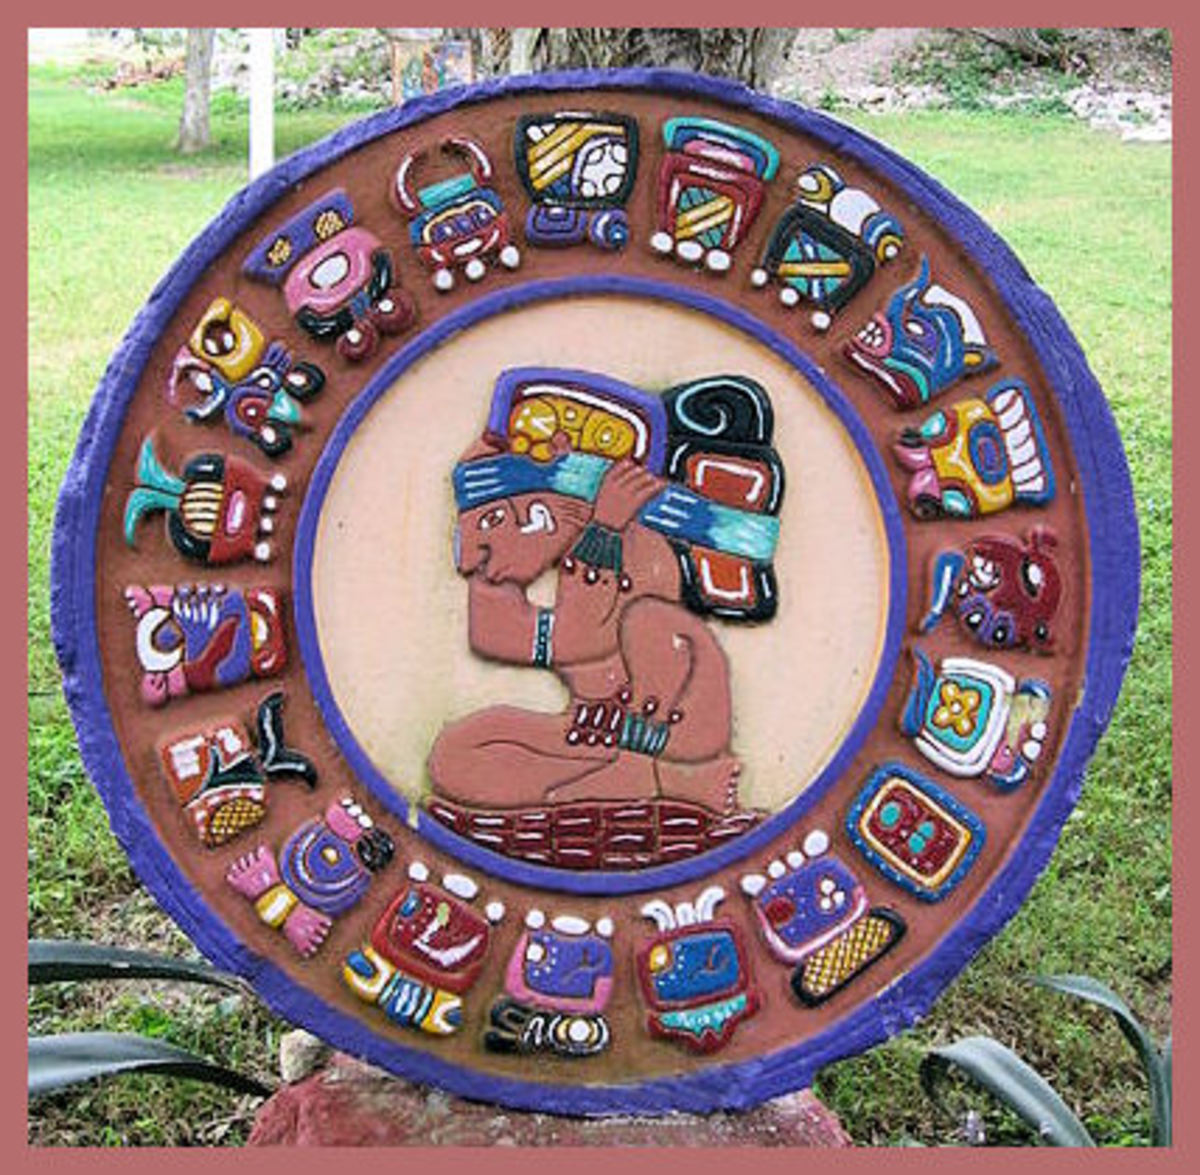 How to read the Mayan days of the week